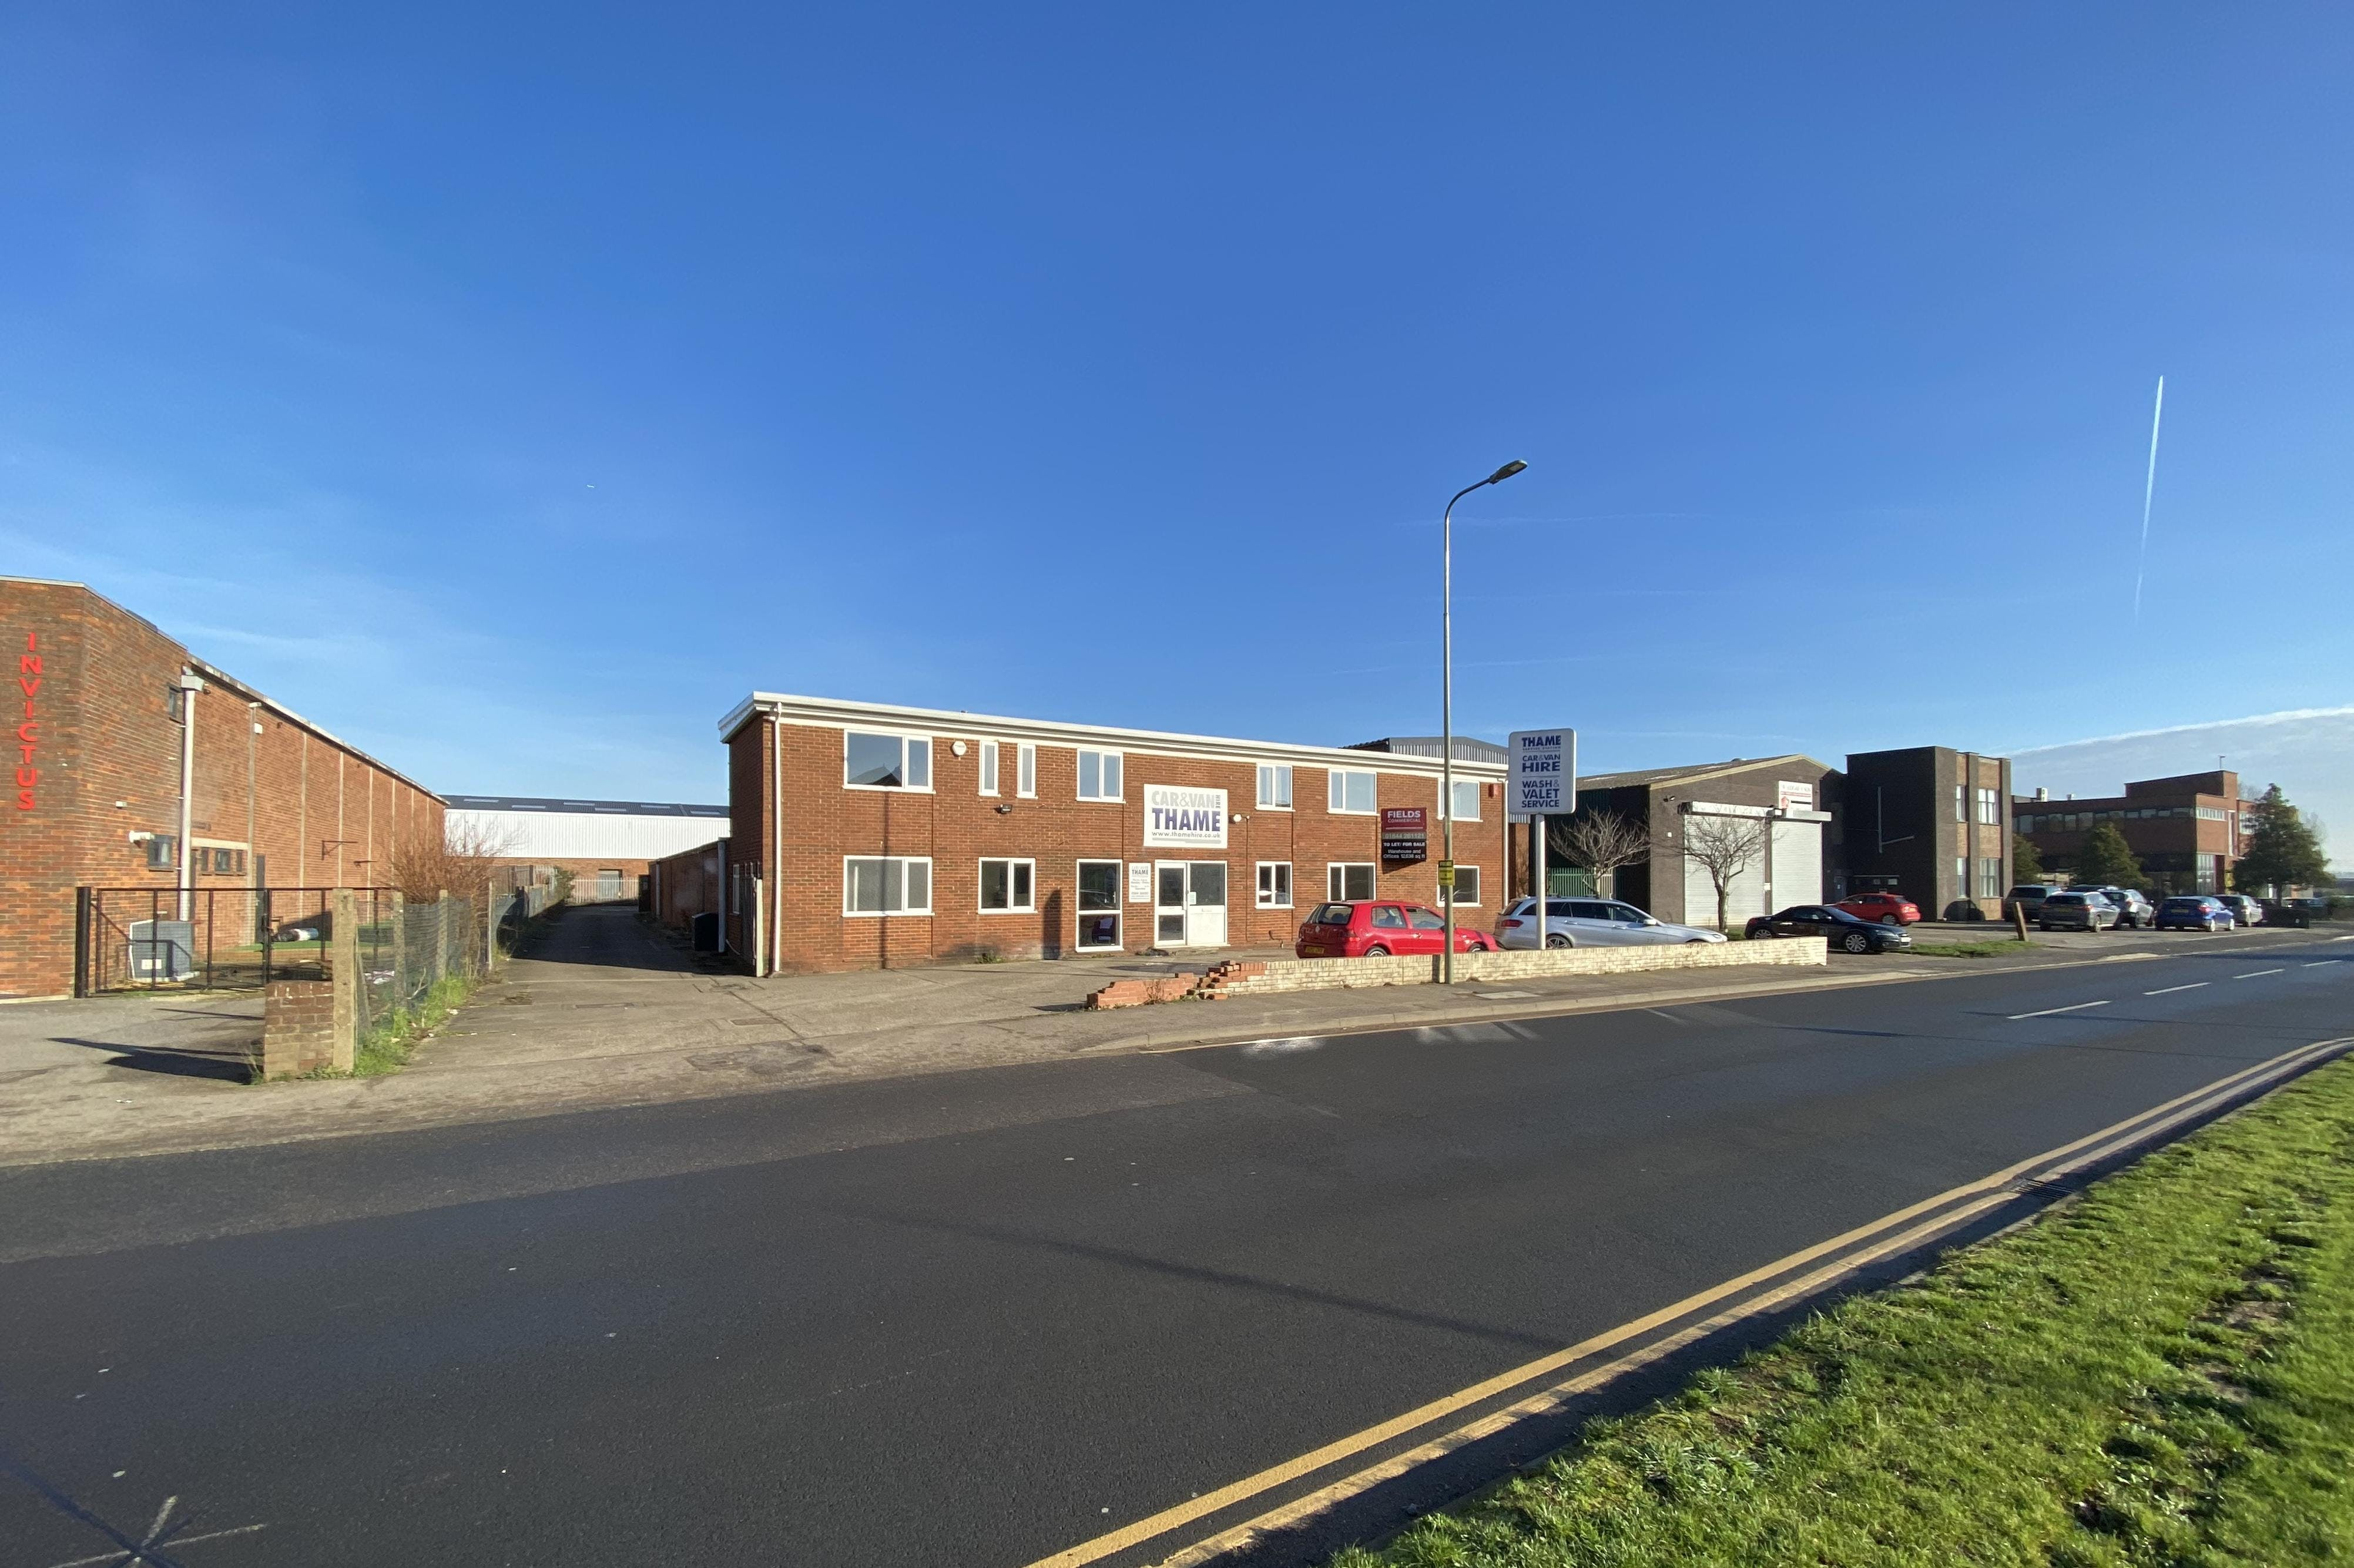 3A Wenman Road, Thame, Industrial To Let / For Sale - IMG_5488.JPG